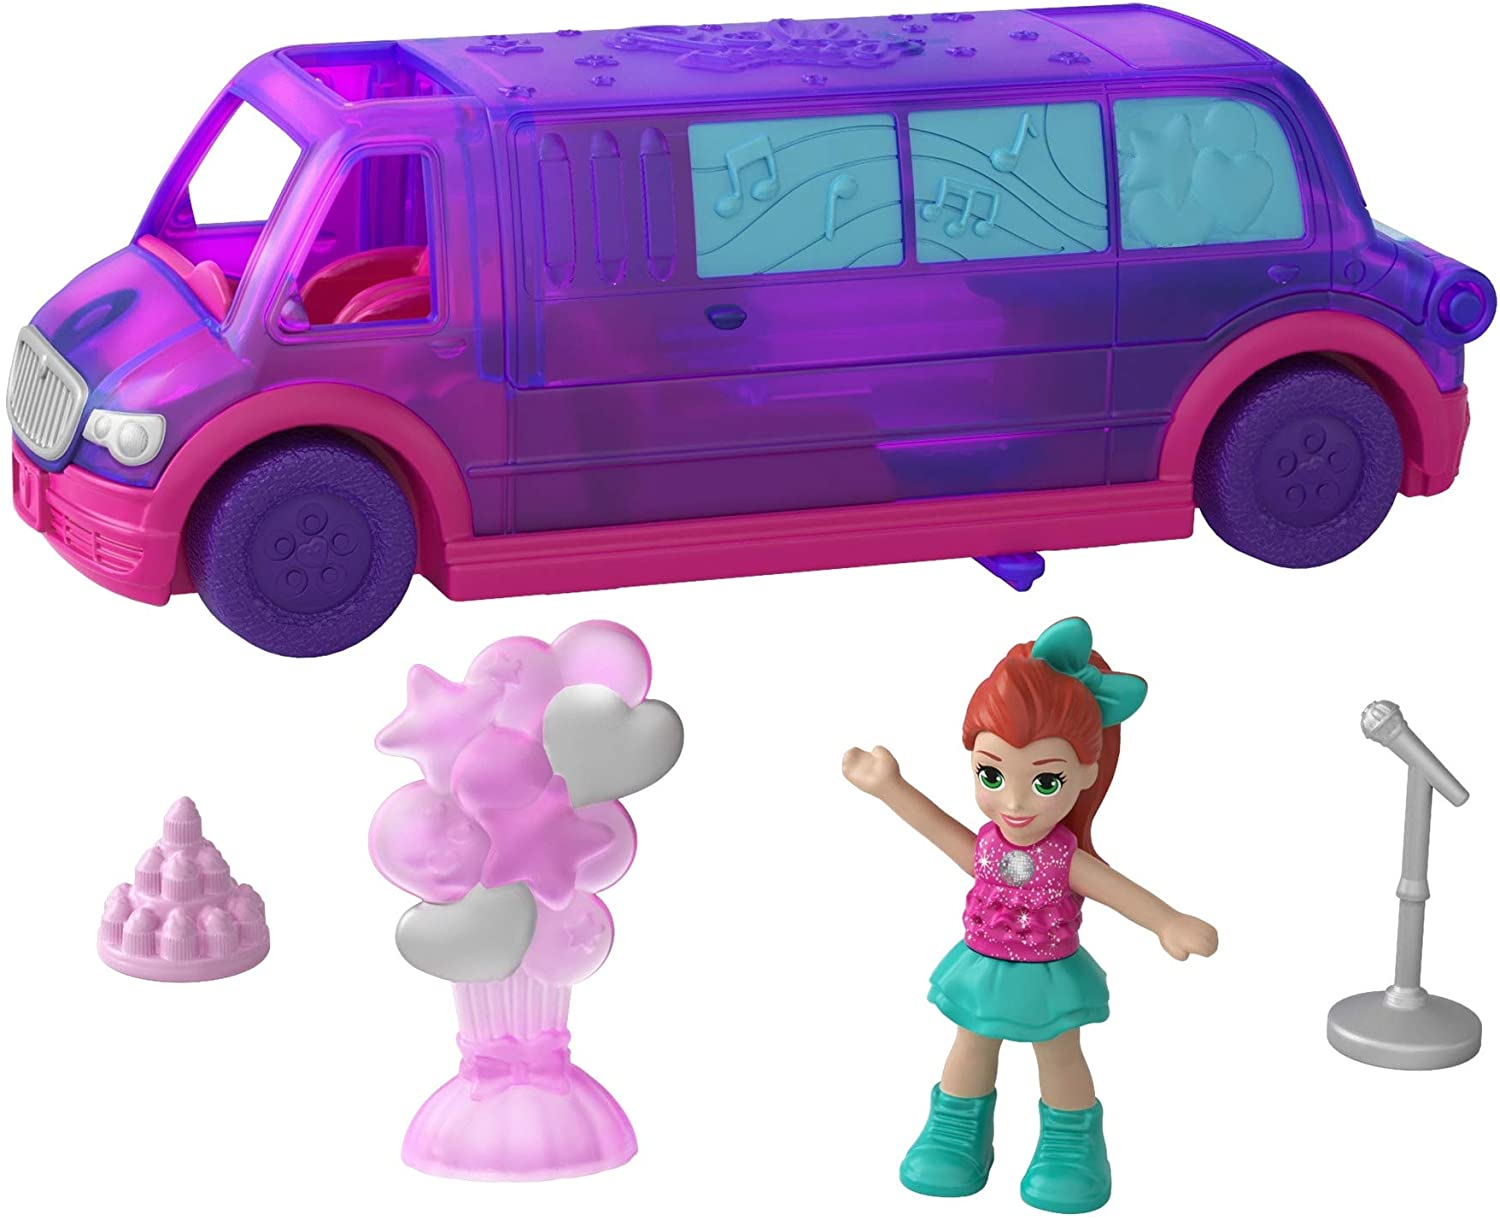 Polly Pocket Vehicles Assortment